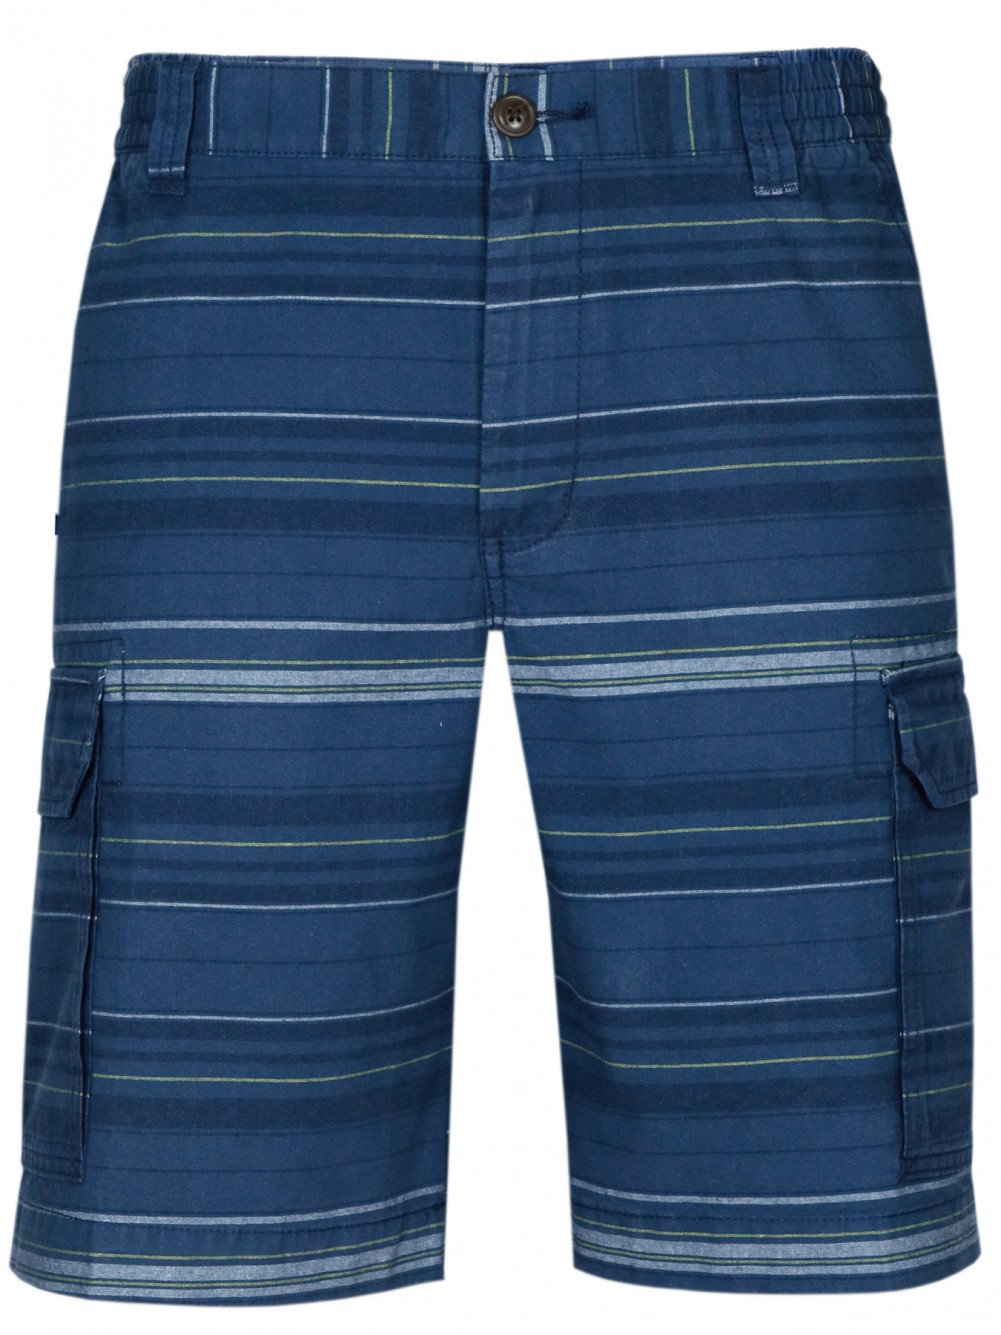 MIAN Cargo Shorts - Navy